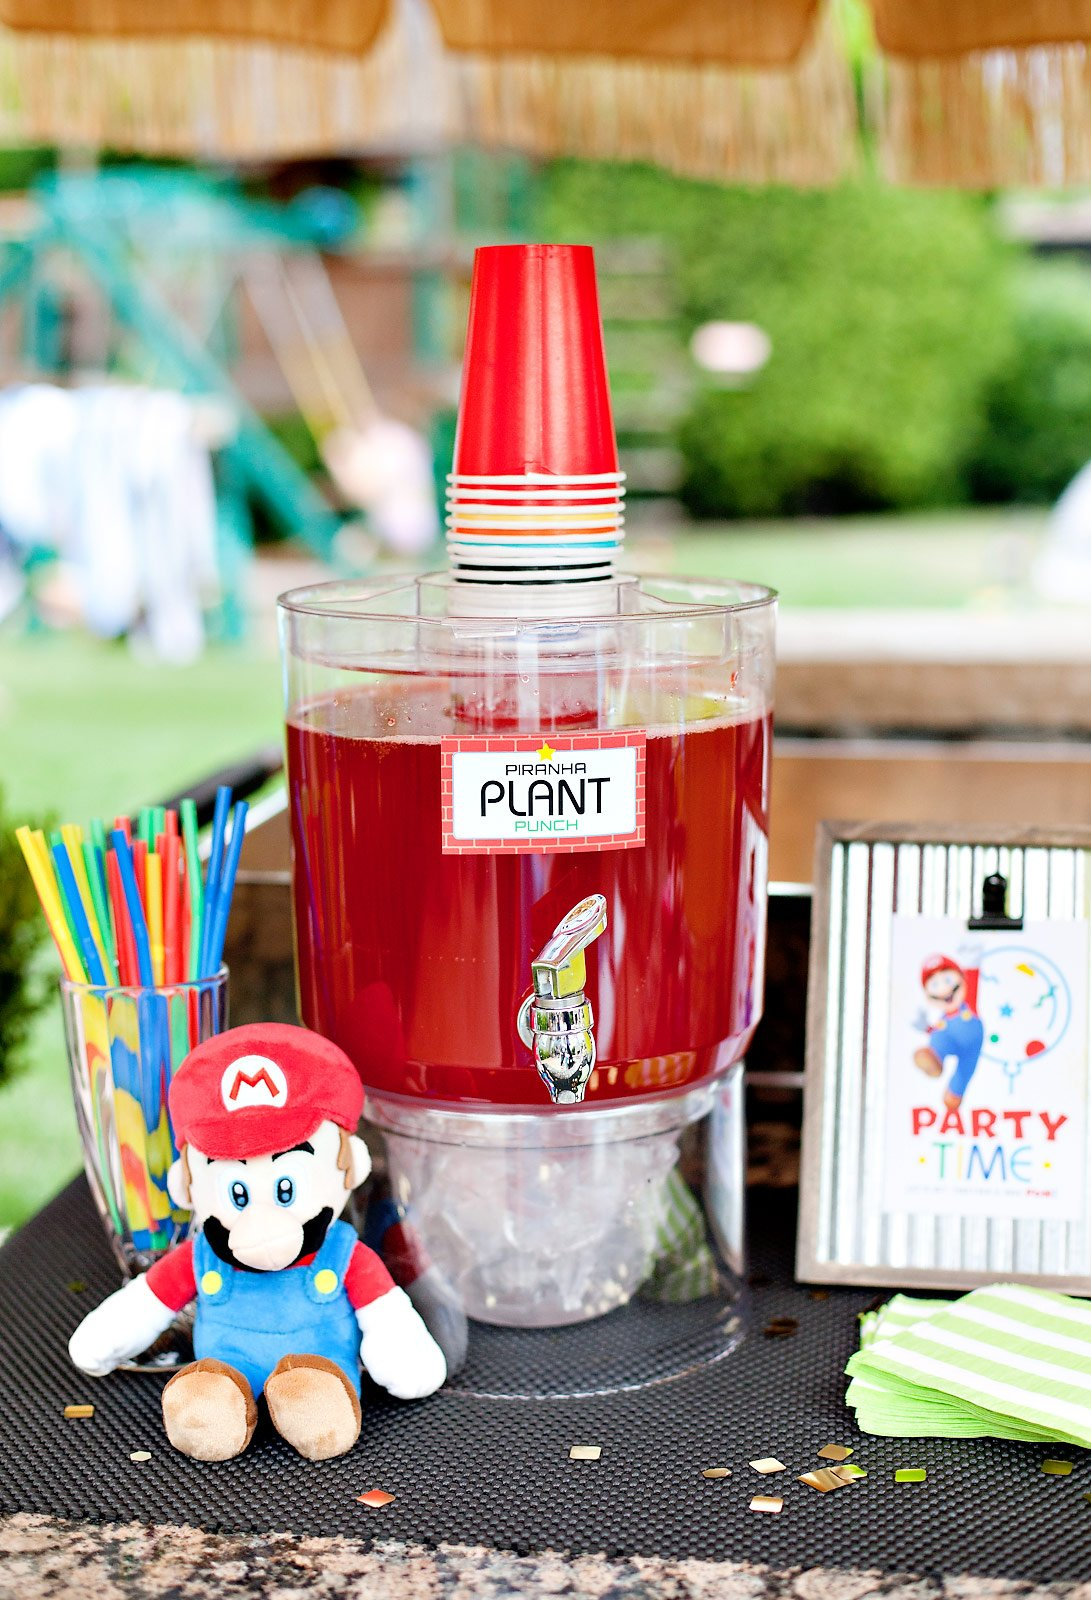 Piranha Plant Punch - Party Drink